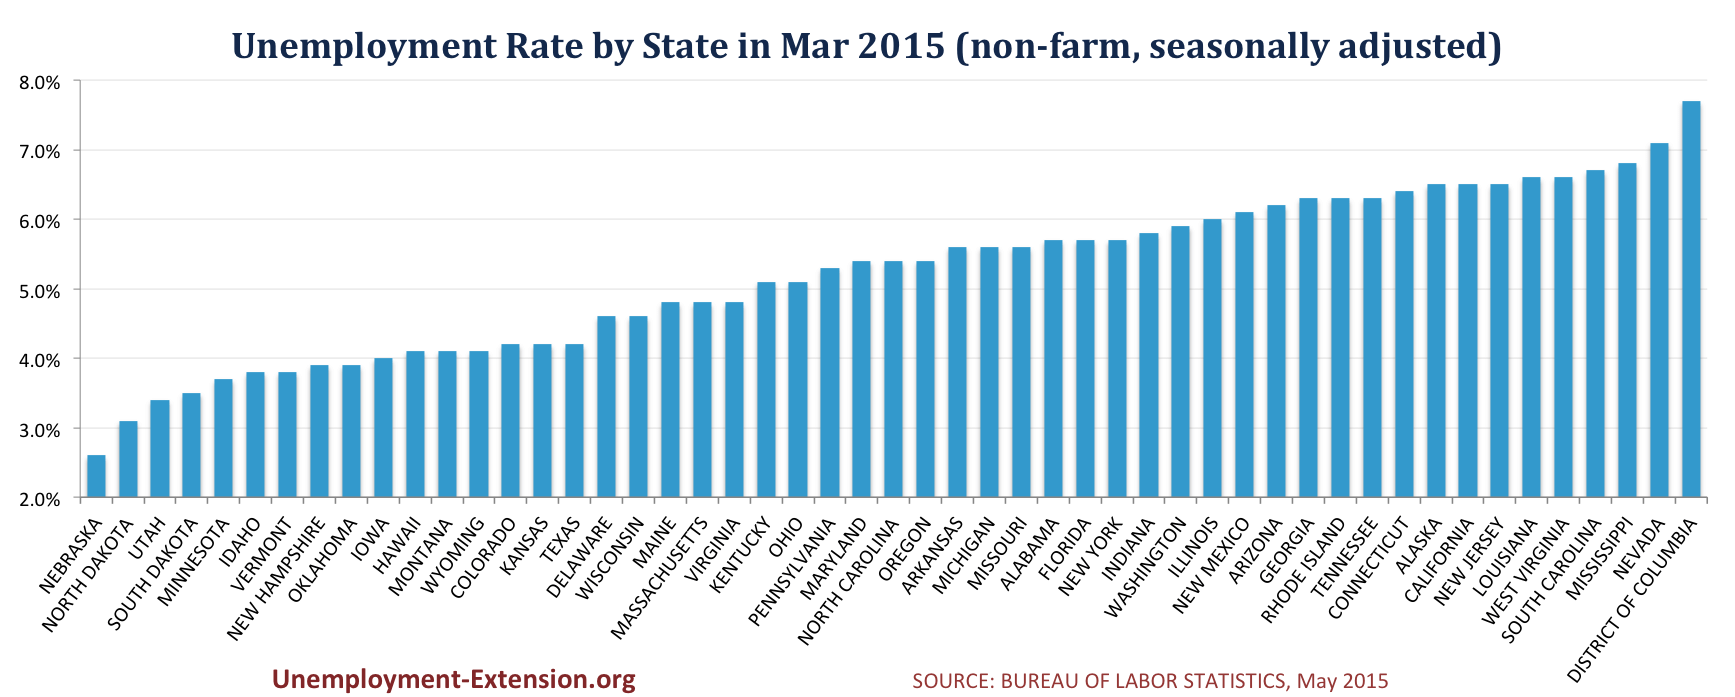 Unemployment Rates for States (non-farm, seasonally adjusted) in March of 2014